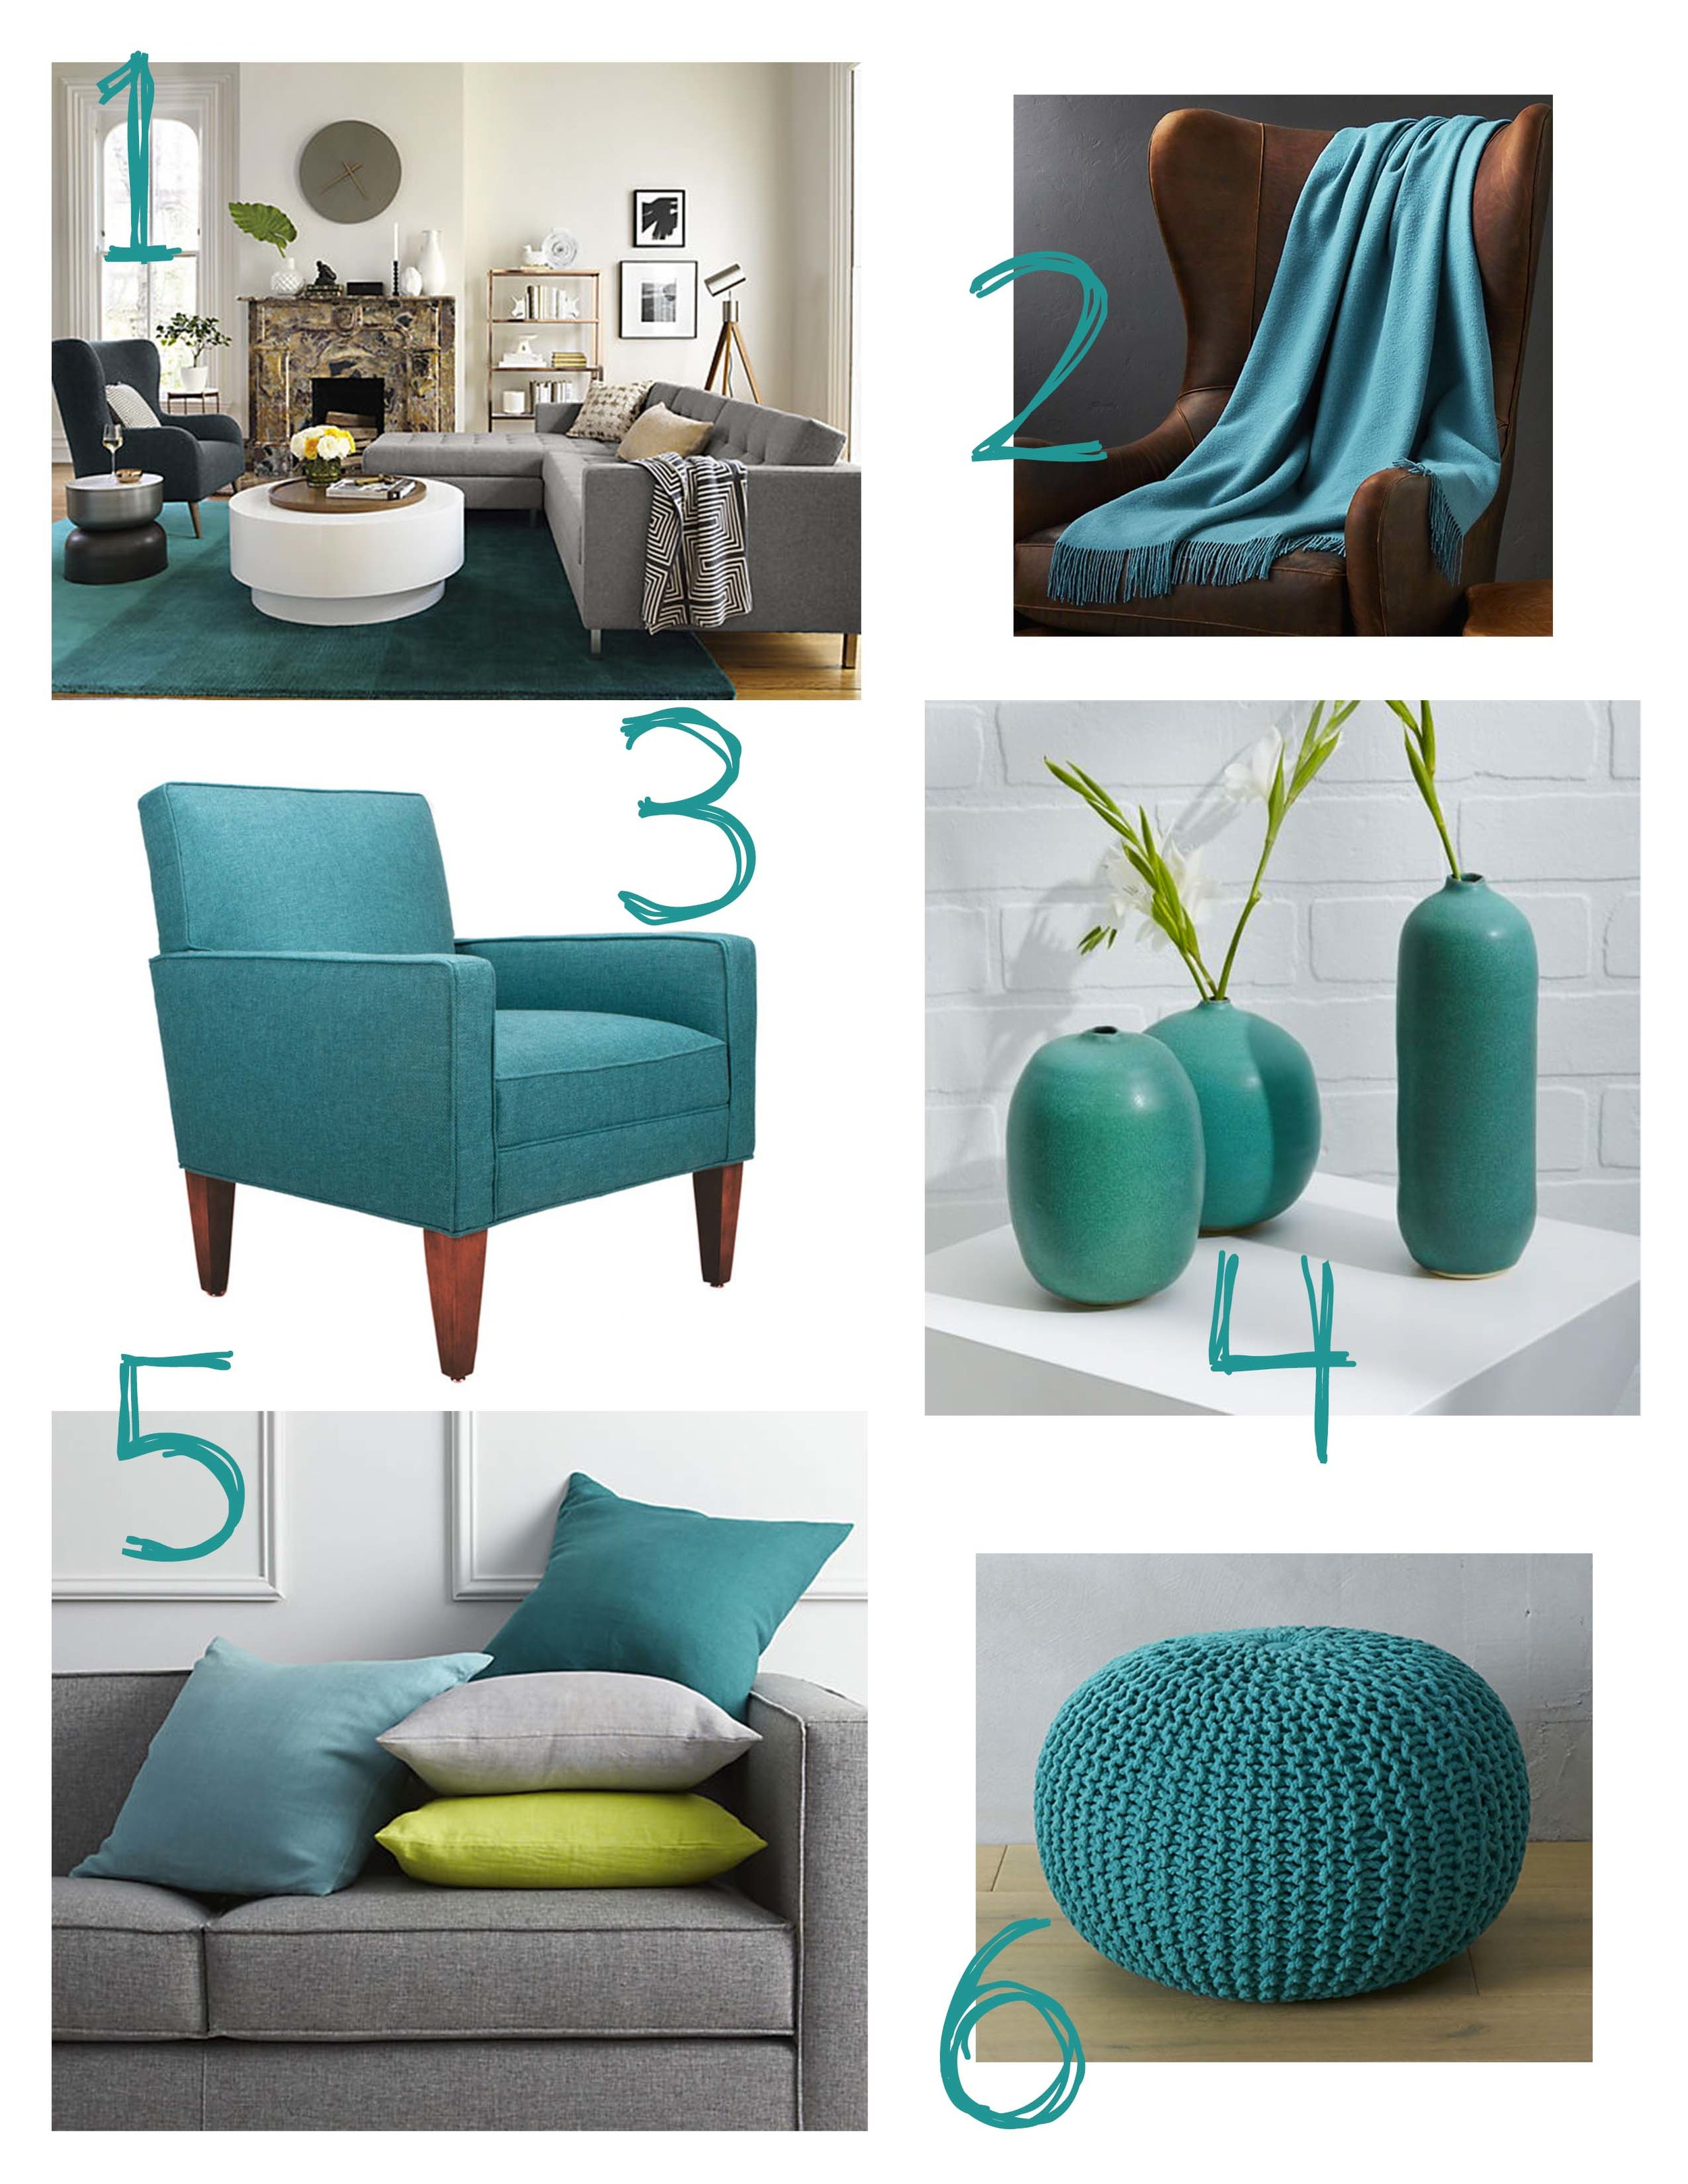 "1. CB2 Ombre Teal Rug: http://www.cb2.com/ombre-teal-rug-8x10/s569522 2. Crate & Barrel Lima Alpaca Peacock Blue Throw: http://www.crateandbarrel.com/lima-alpaca-peacock-blue-throw/s279406 3. Dot&Bo Uptown Lounge Chair in Teal: http://www.dotandbo.com/collections/free-shipping-day-seating/22941-uptown-lounge-chair-in-teal#Chestnut 4. West Elm Judy Jackson Vase Set: http://www.westelm.com/products/judy-jackson-vase-set-d3619/?pkey=cvases-botanicals%7C%7C&group=1&sku=1456768 5. CB2 Linon Teal 20"" Pillow: http://www.cb2.com/linon-teal-20-pillow-with-down-alternative-insert/s206885 6. CB2 Knitted Teal Pouf: http://www.cb2.com/knitted-teal-pouf/s563043"